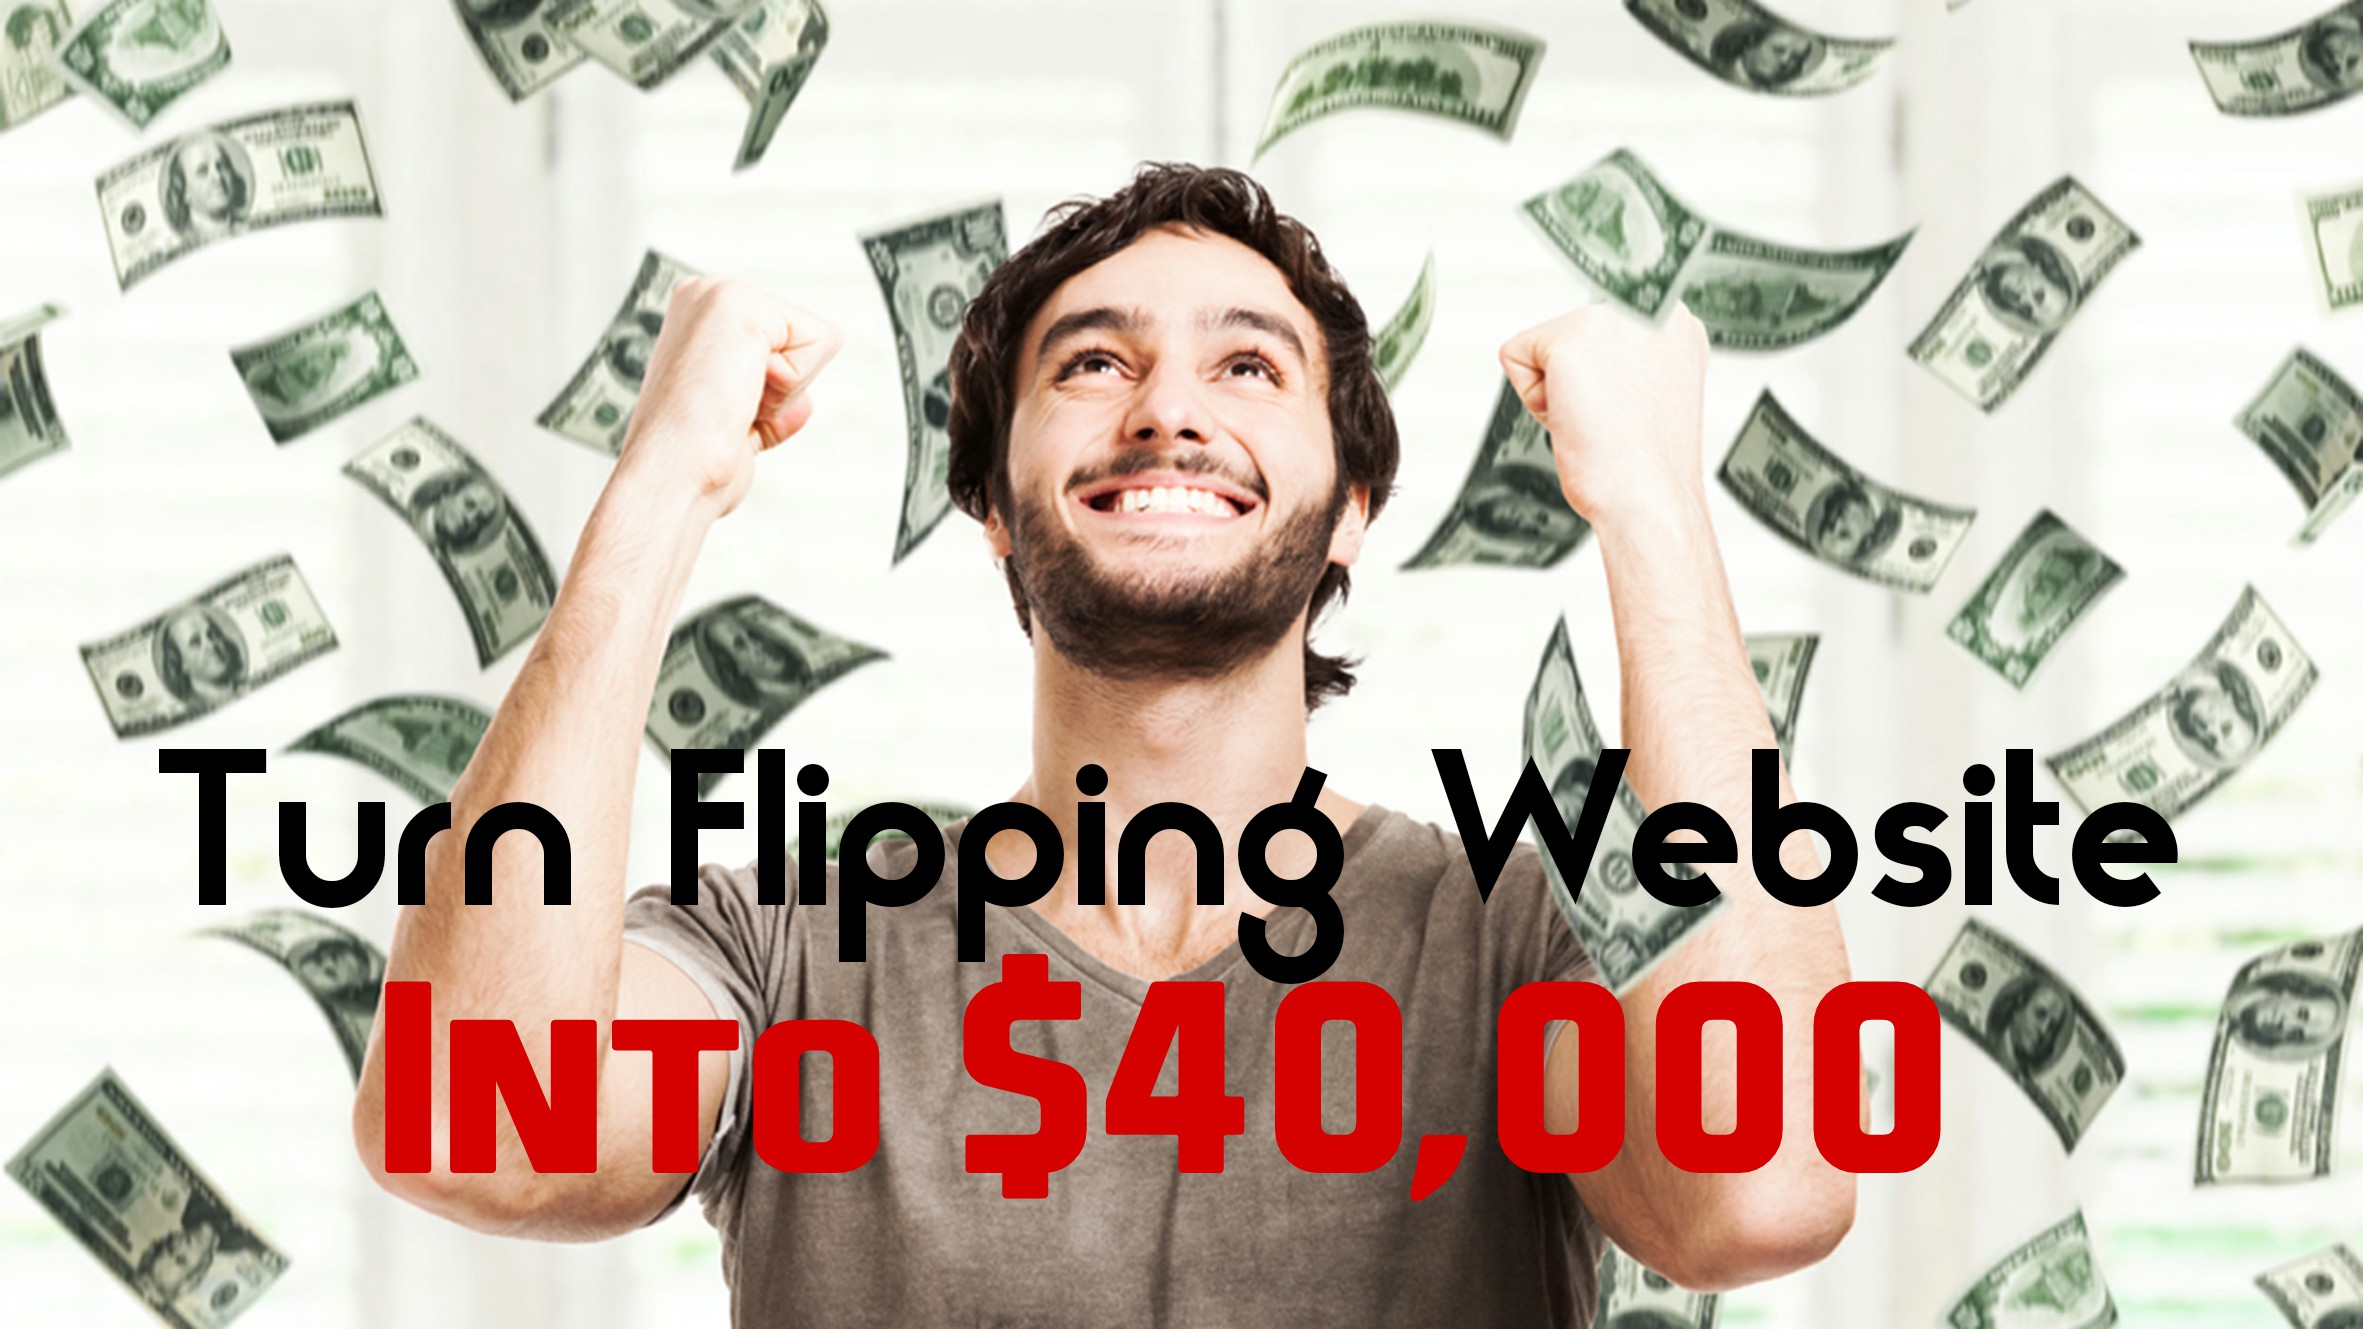 Teach You How To Turn Flipping Website Into A $40,000 A month